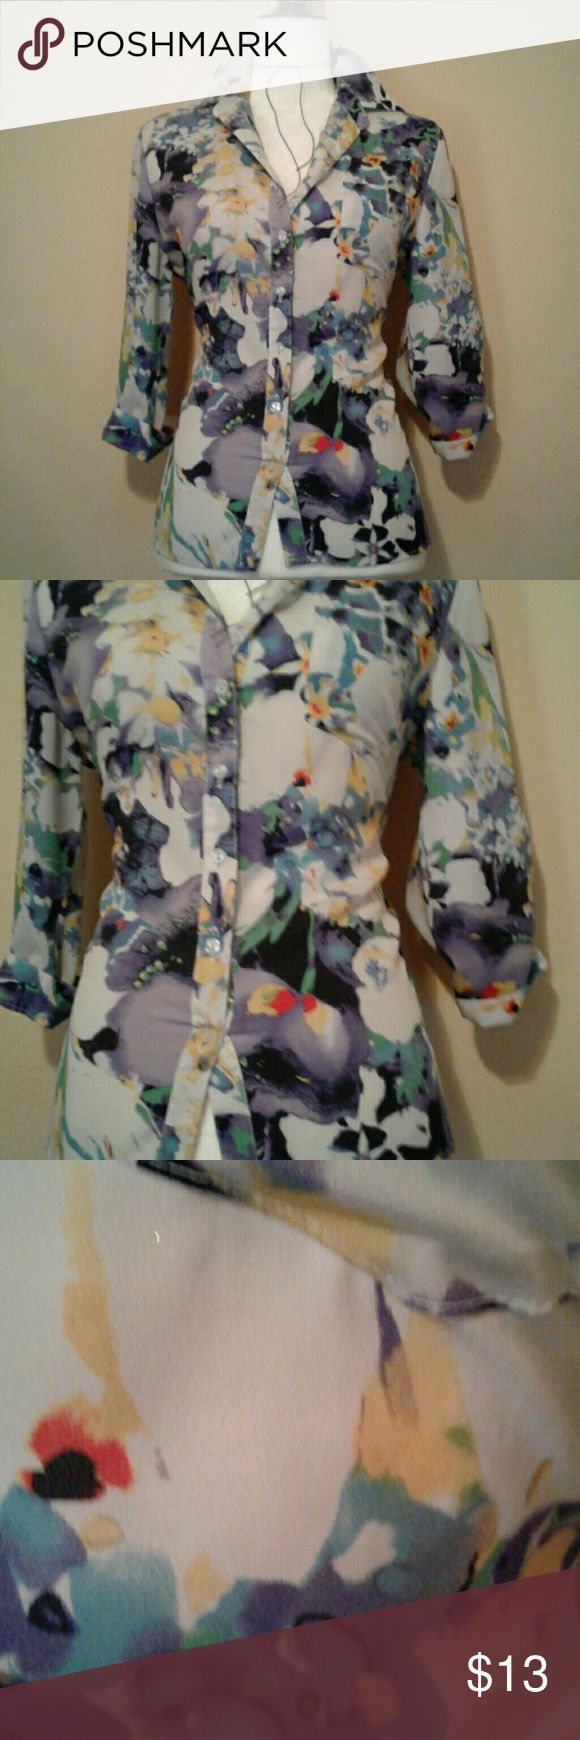 New York Sere Bade floral hig low Blouse New York Sere Bade floral hig low Blouse   Super stylish and cute   100%polyester   High & low  Blouse   Great condition   Size Medium New York & Company Tops Button Down Shirts